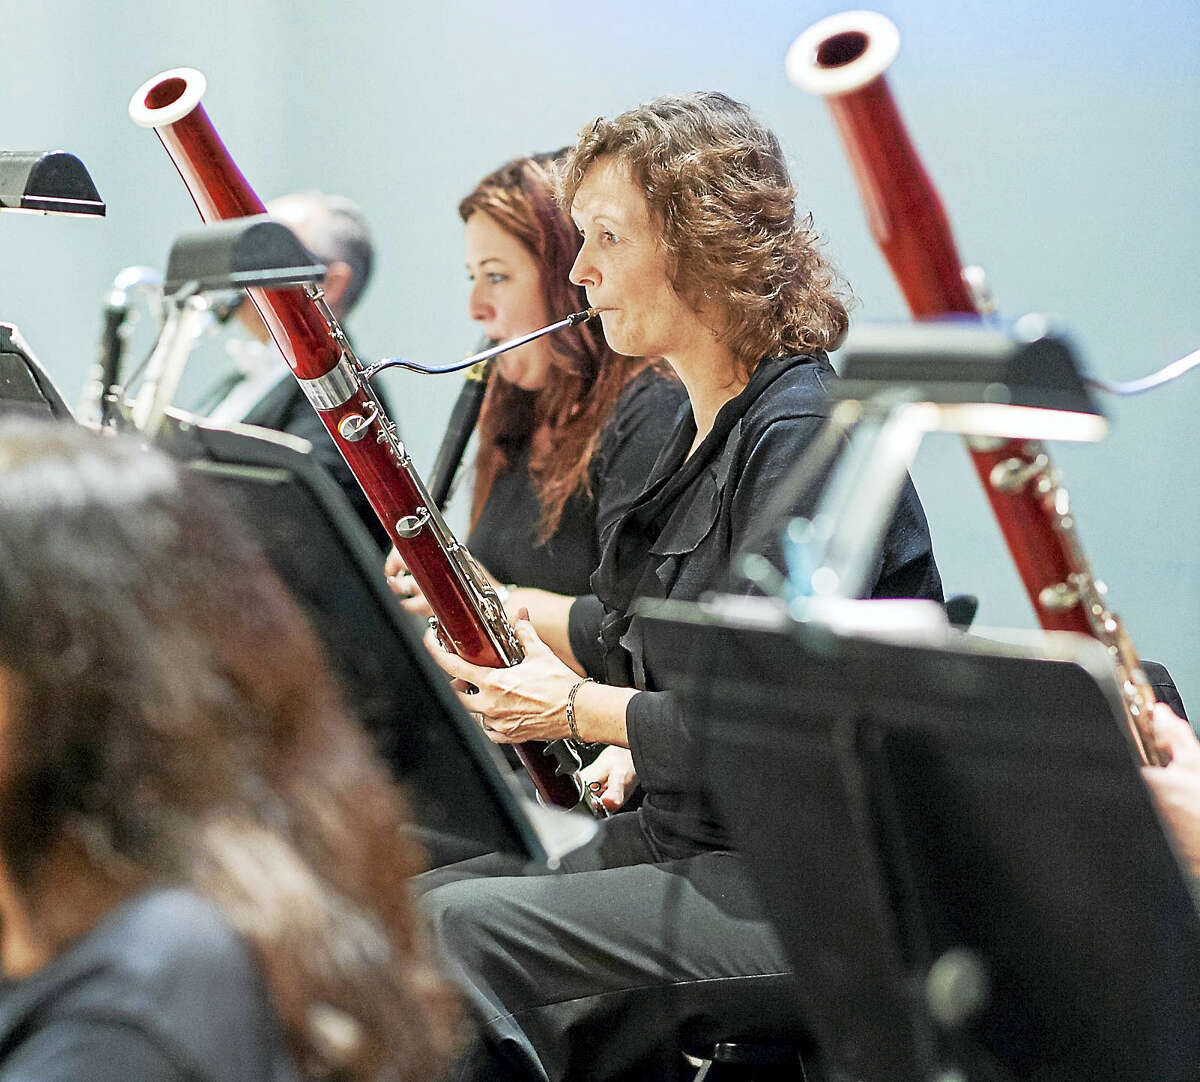 NHSO bassoonist Sue Zoellner-Cross will perform at the family event.